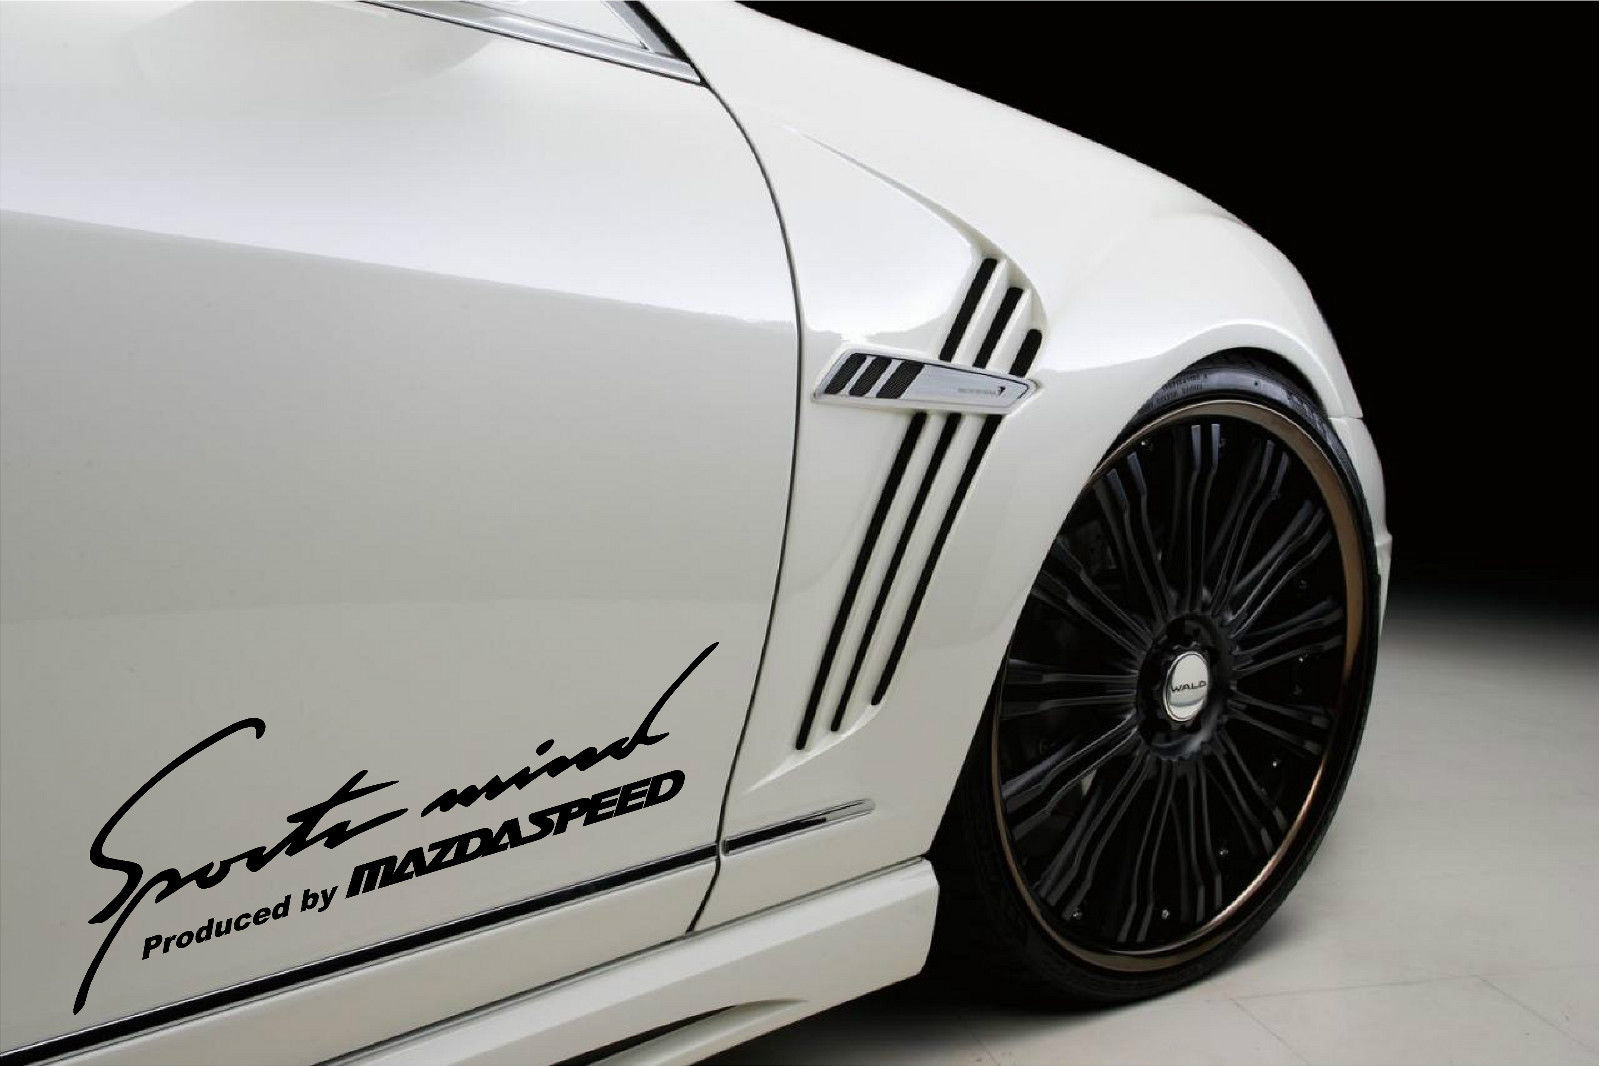 2 Sports Mind Produced by Mazdaspeed Decal sticker#2